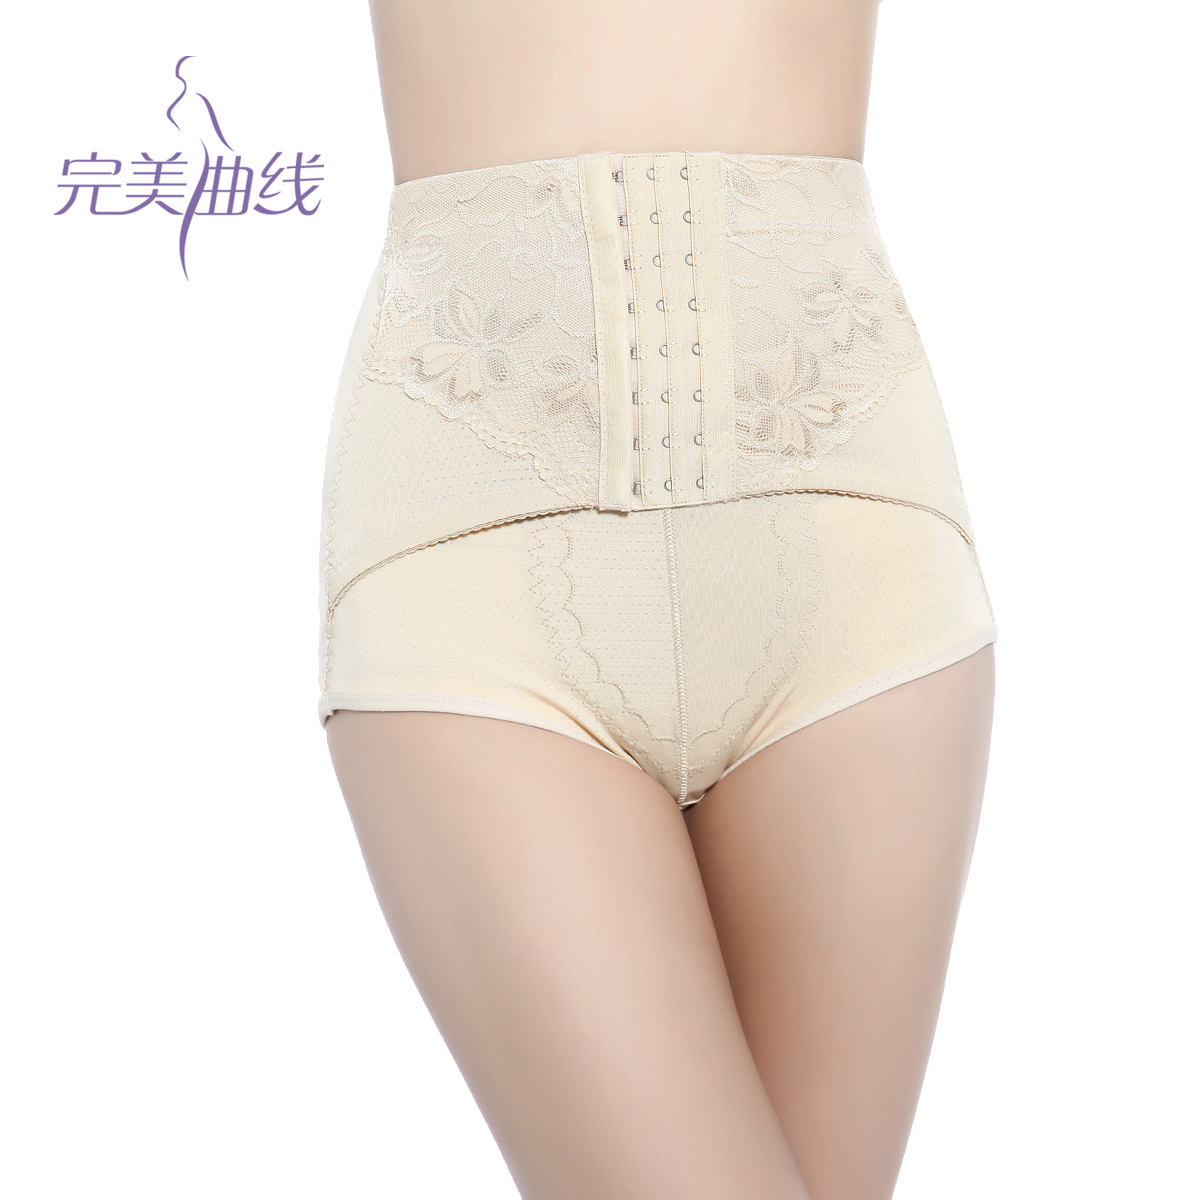 Perfect curve abdomen drawing butt-lifting mid waist stovepipe beauty care slimming panties postpartum corset body shaping pants